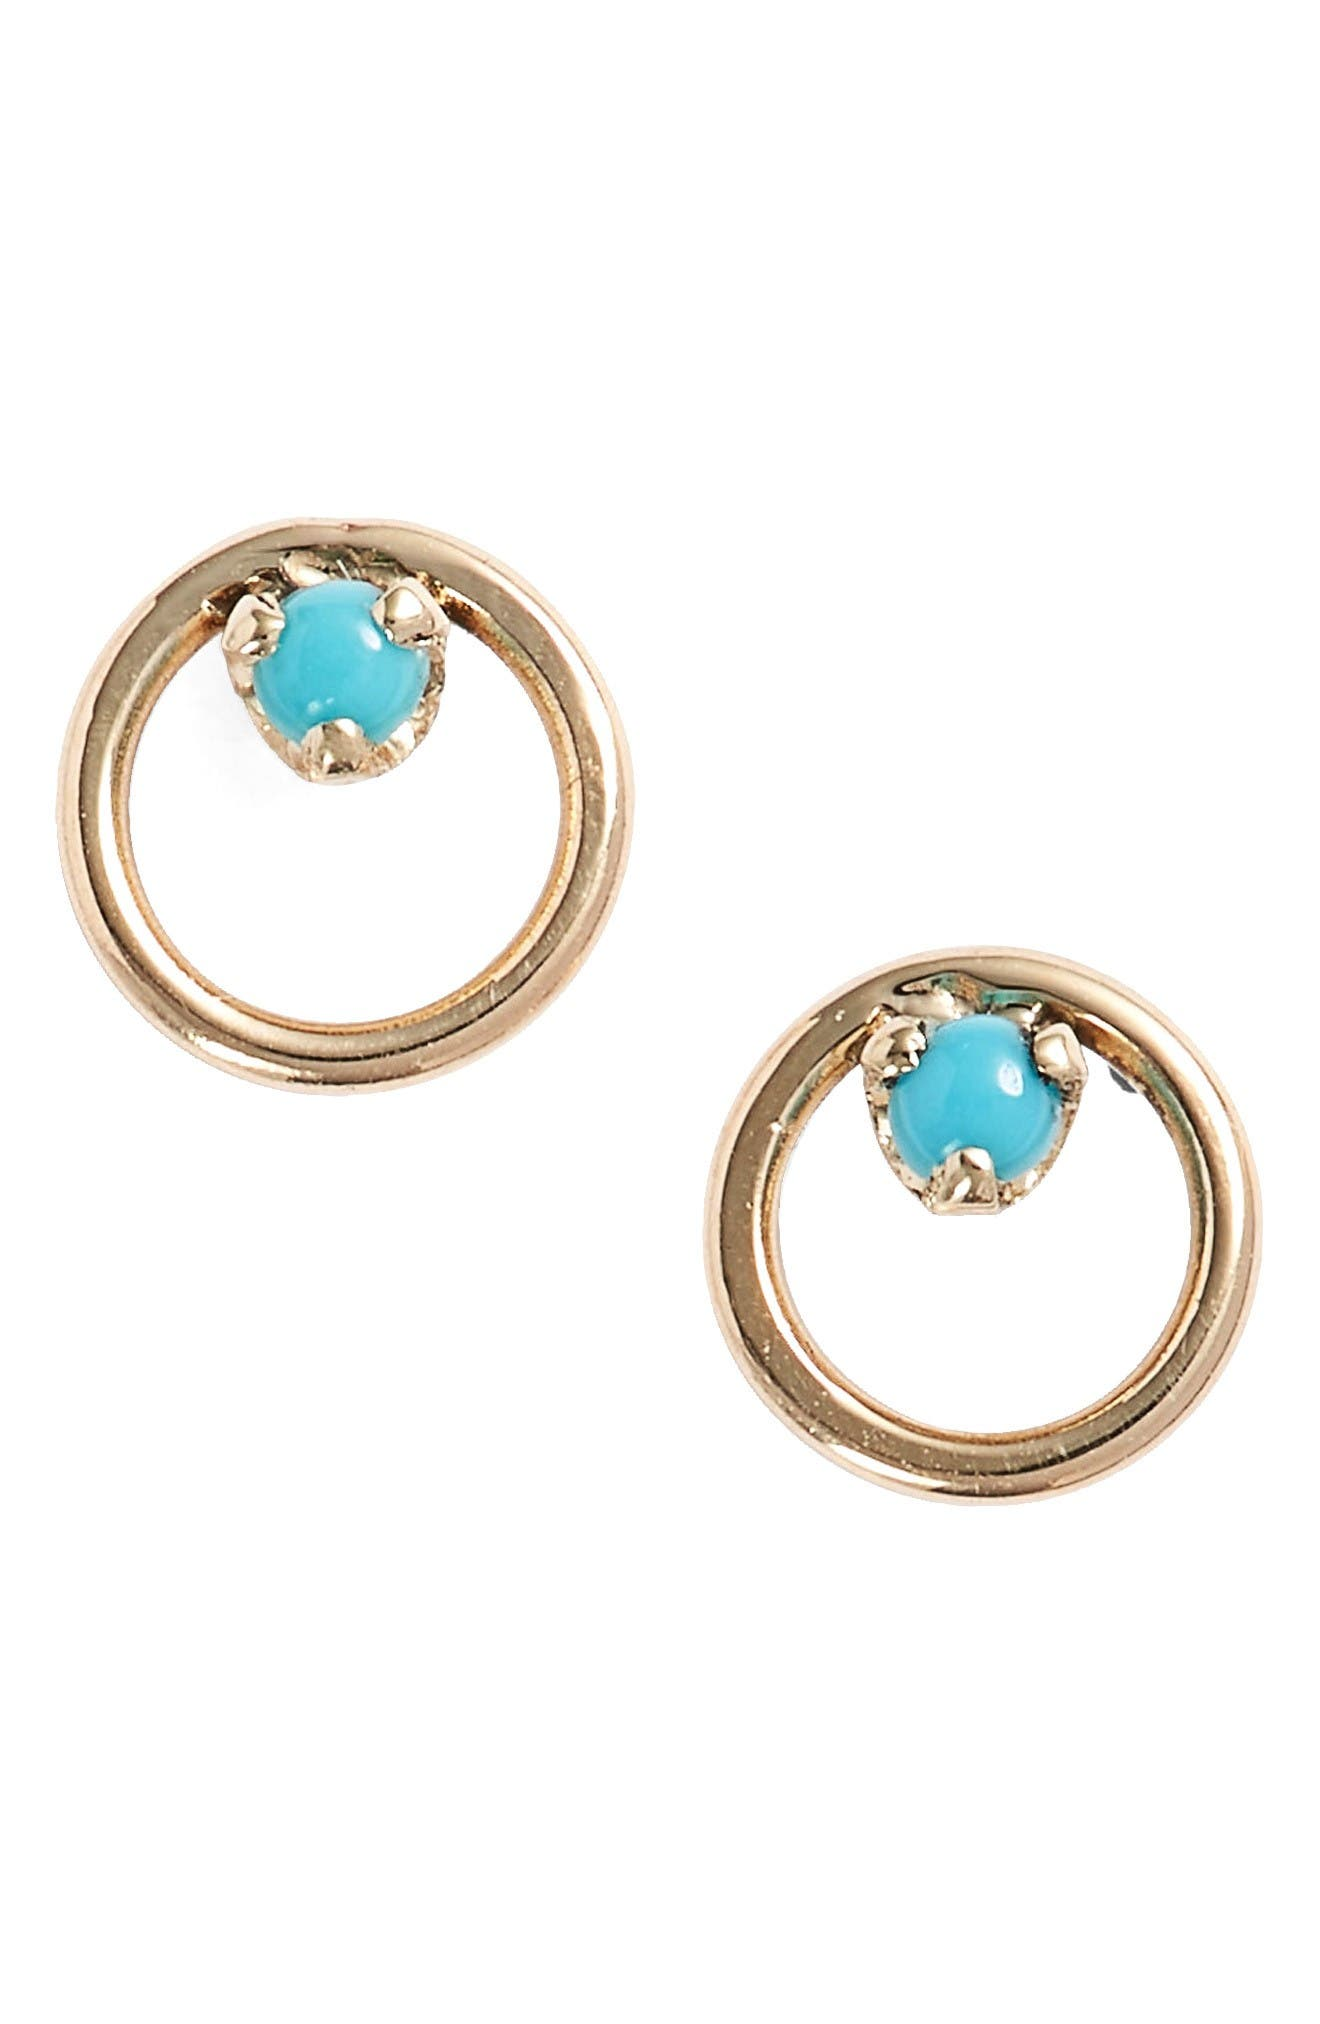 Turquoise Circle Stud Earrings,                         Main,                         color, Yellow Gold/ Turquoise